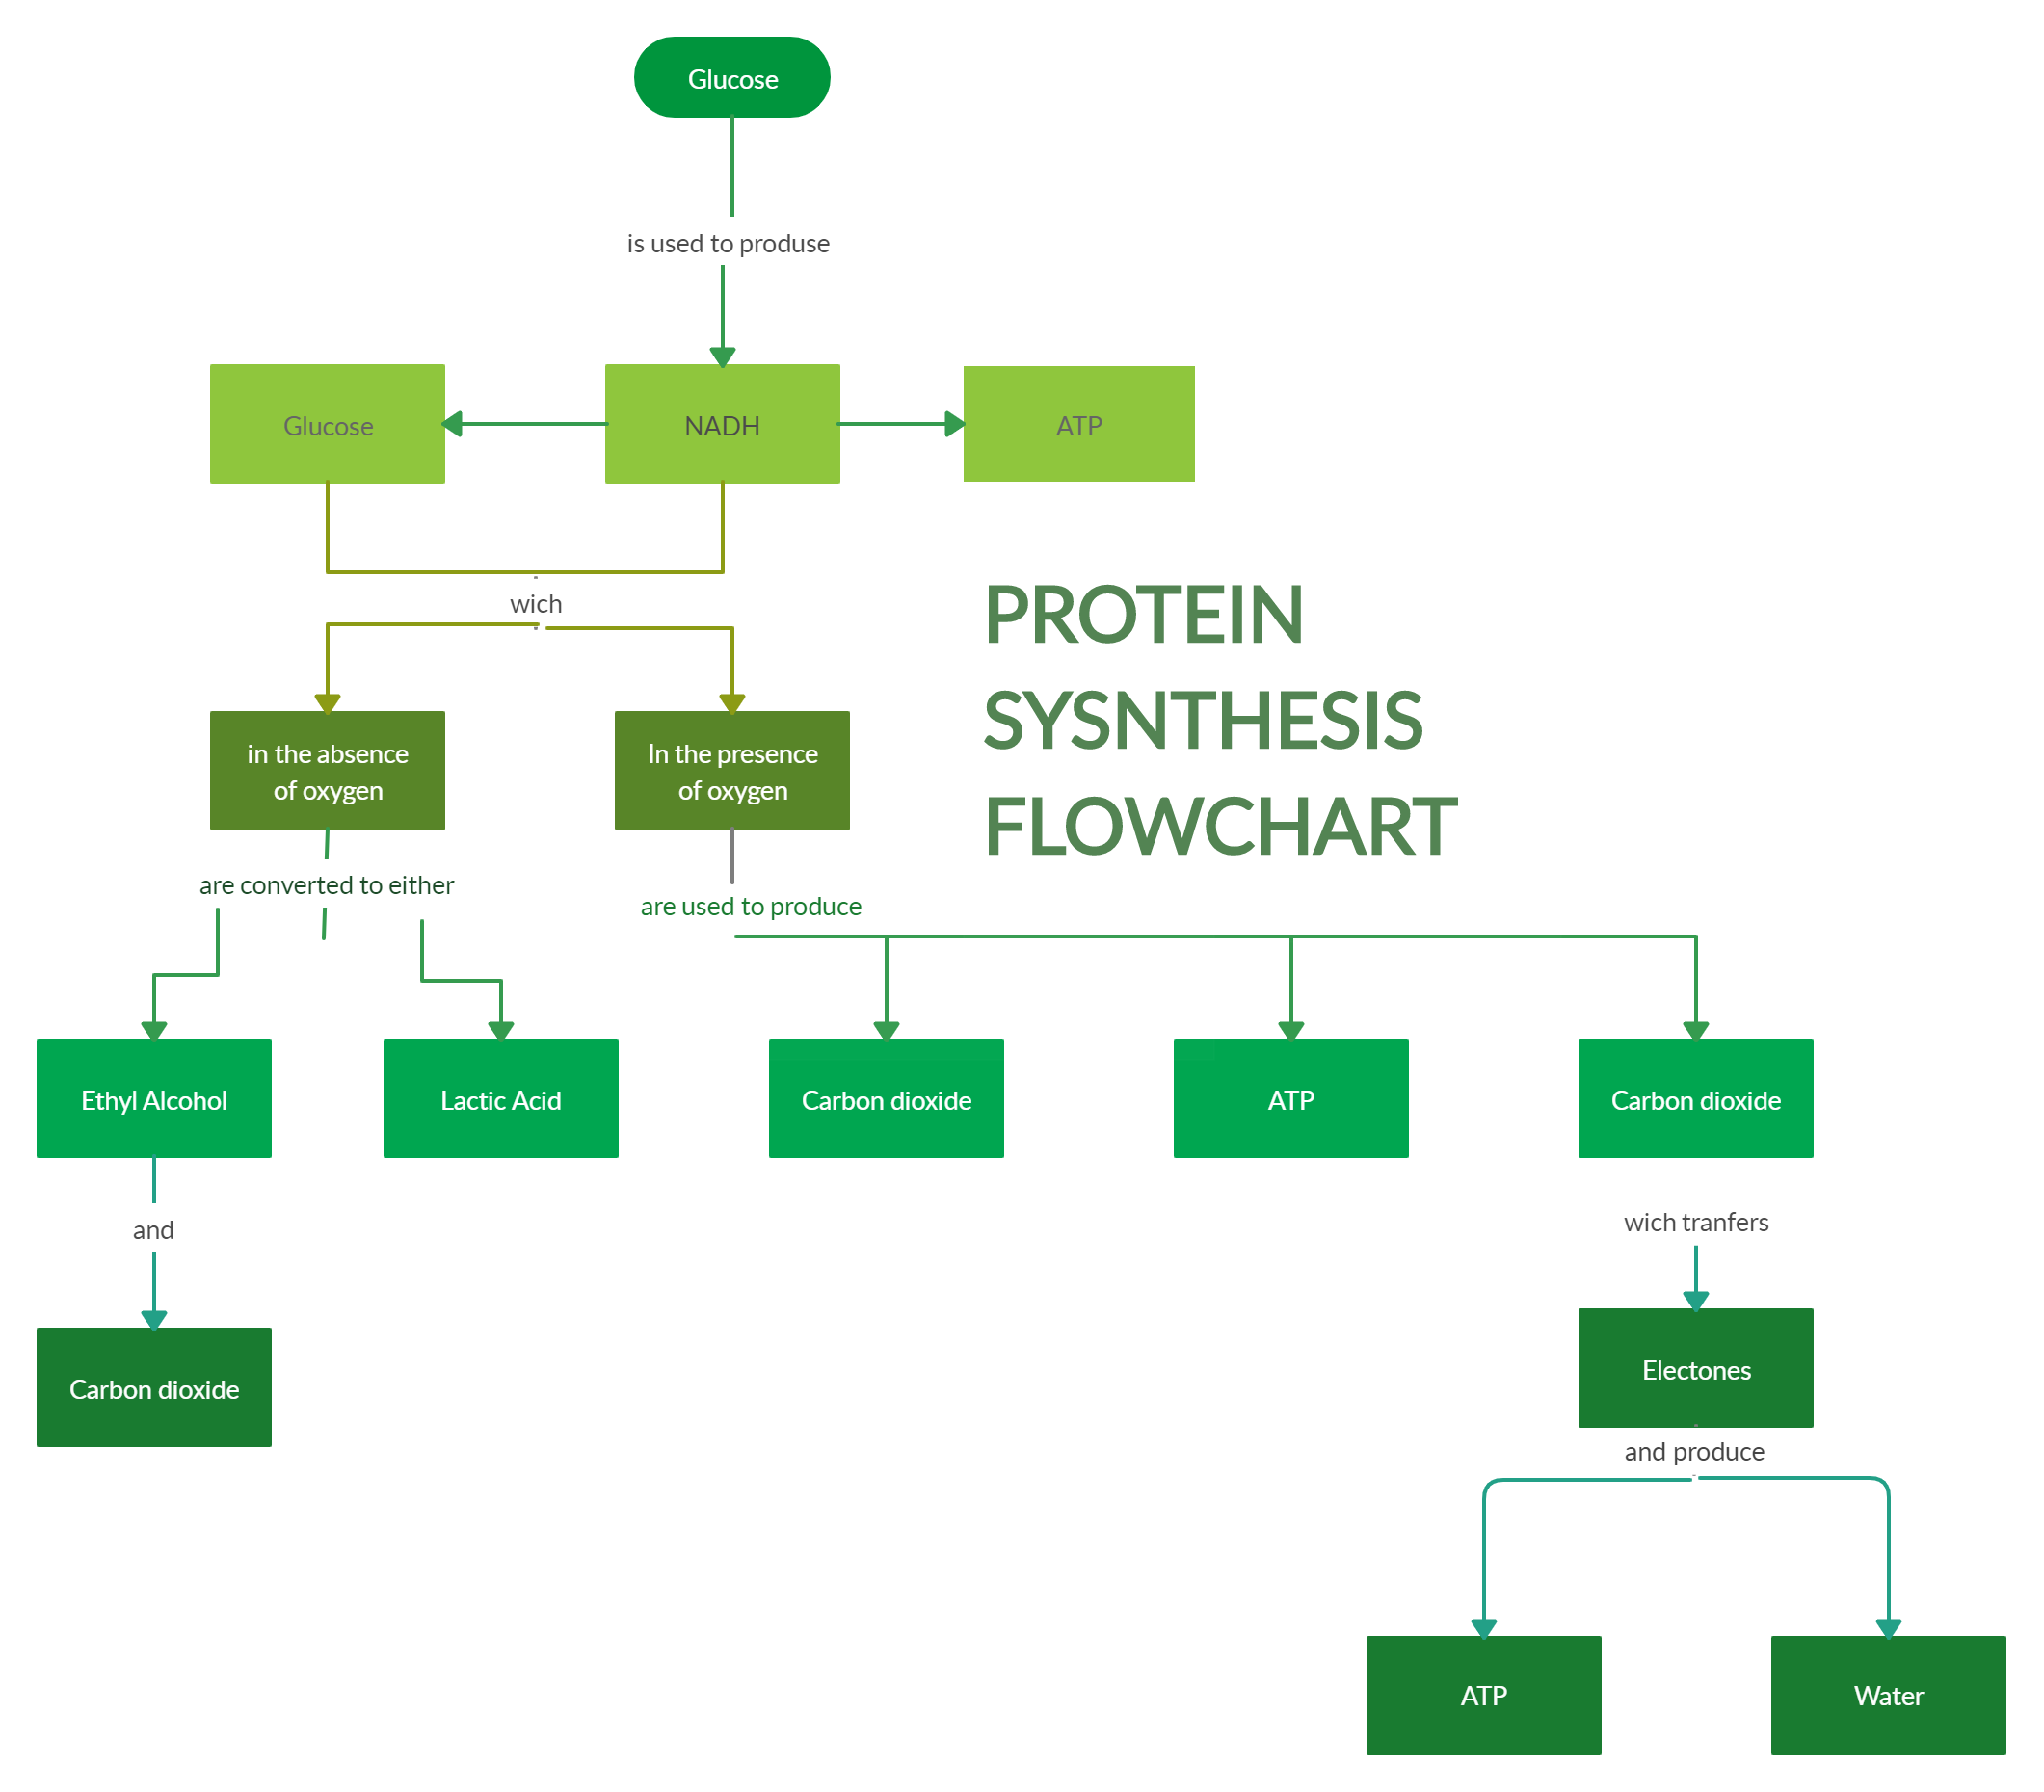 Protein Synthesis Flowchart Protein Synthesis Flow Chart Shows The Process Of One Of The Most Complicated Biosynthesis Protein Synthesis Flow Chart Diagram